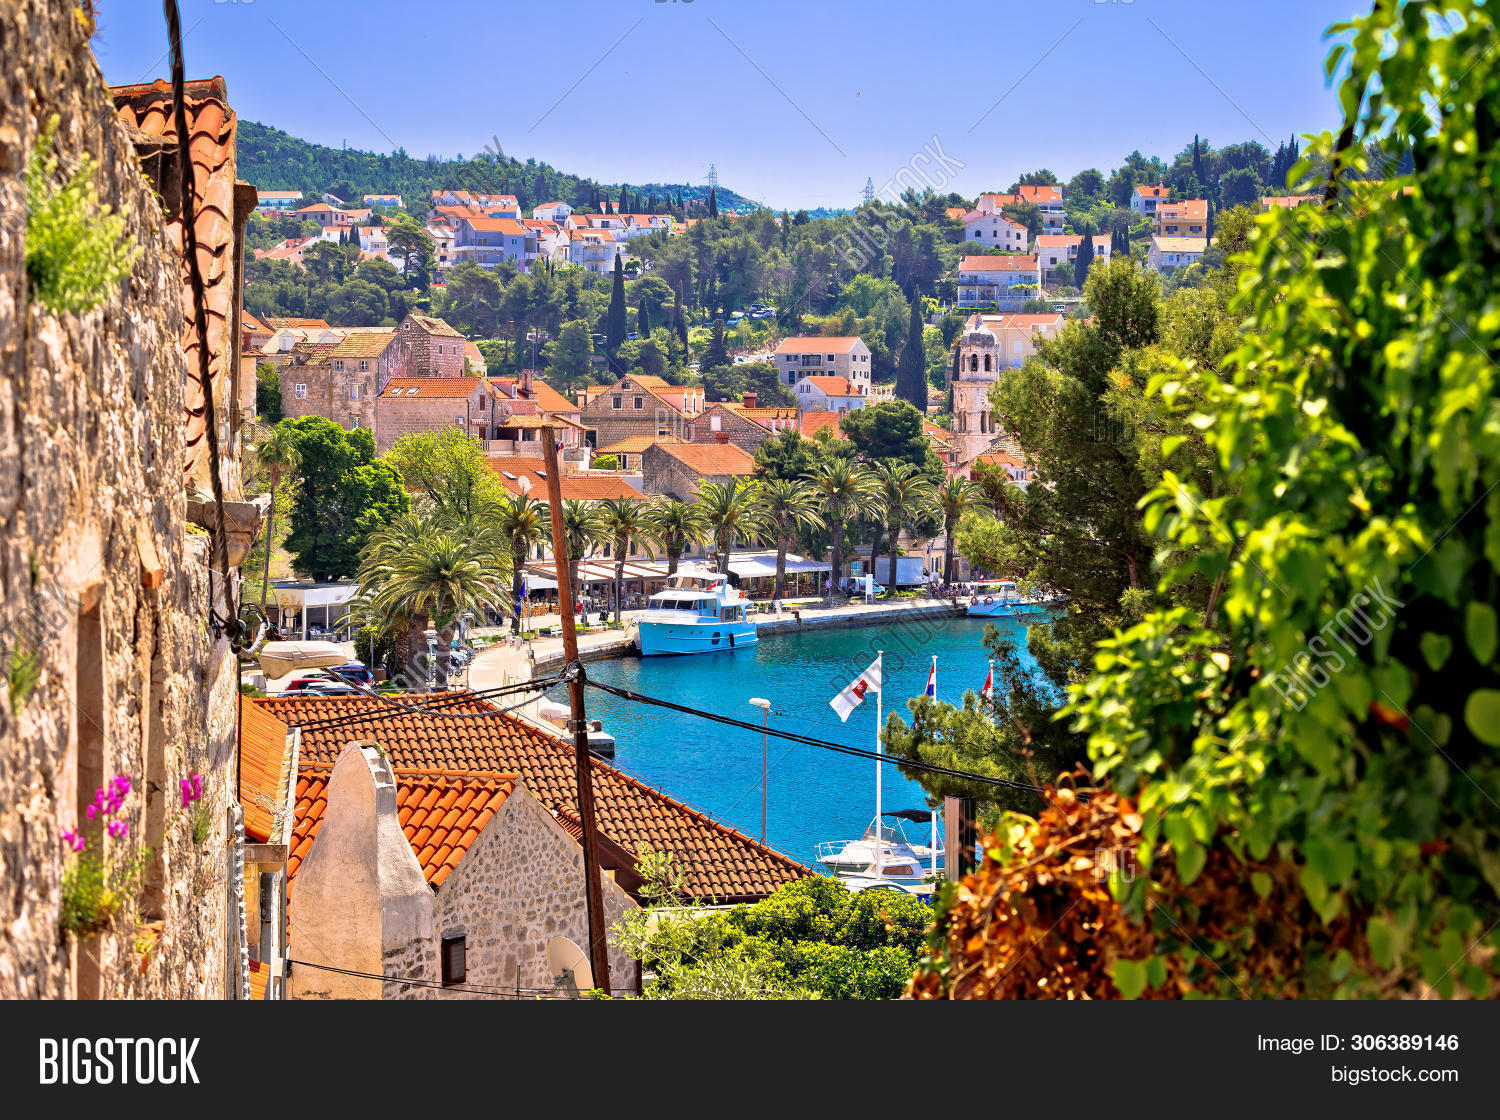 Town Of Cavtat Waterfront View, South Dalmatia, Croatia